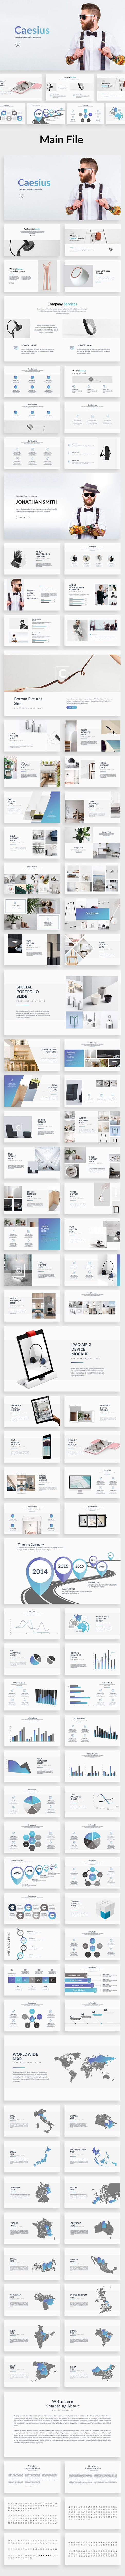 Caesius  Creative Powerpoint Template — Powerpoint PPT #business #clean • Download ➝ https://graphicriver.net/item/caesius-creative-powerpoint-template/19837512?ref=pxcr